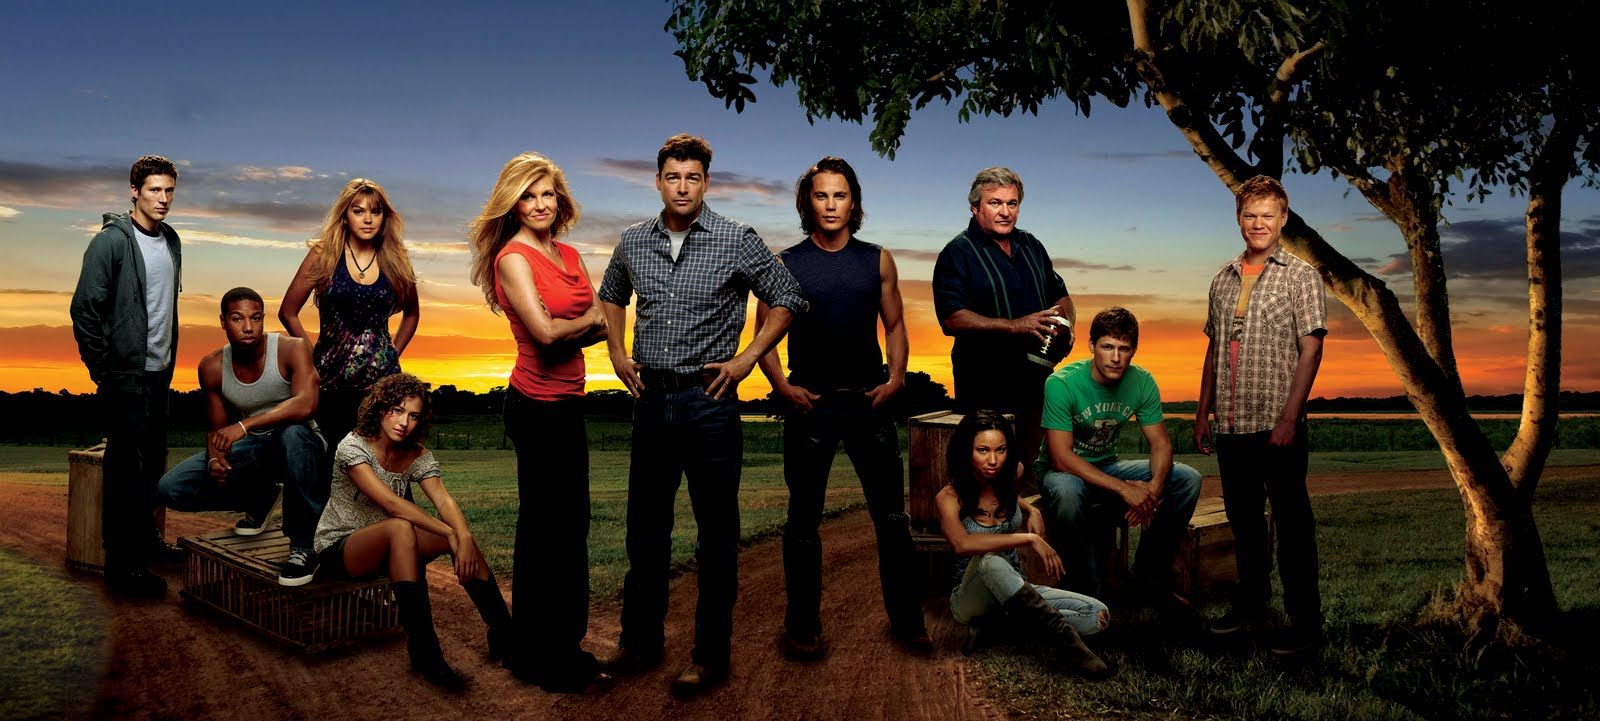 Friday Night Lights Geeked Out Nation 1600x721